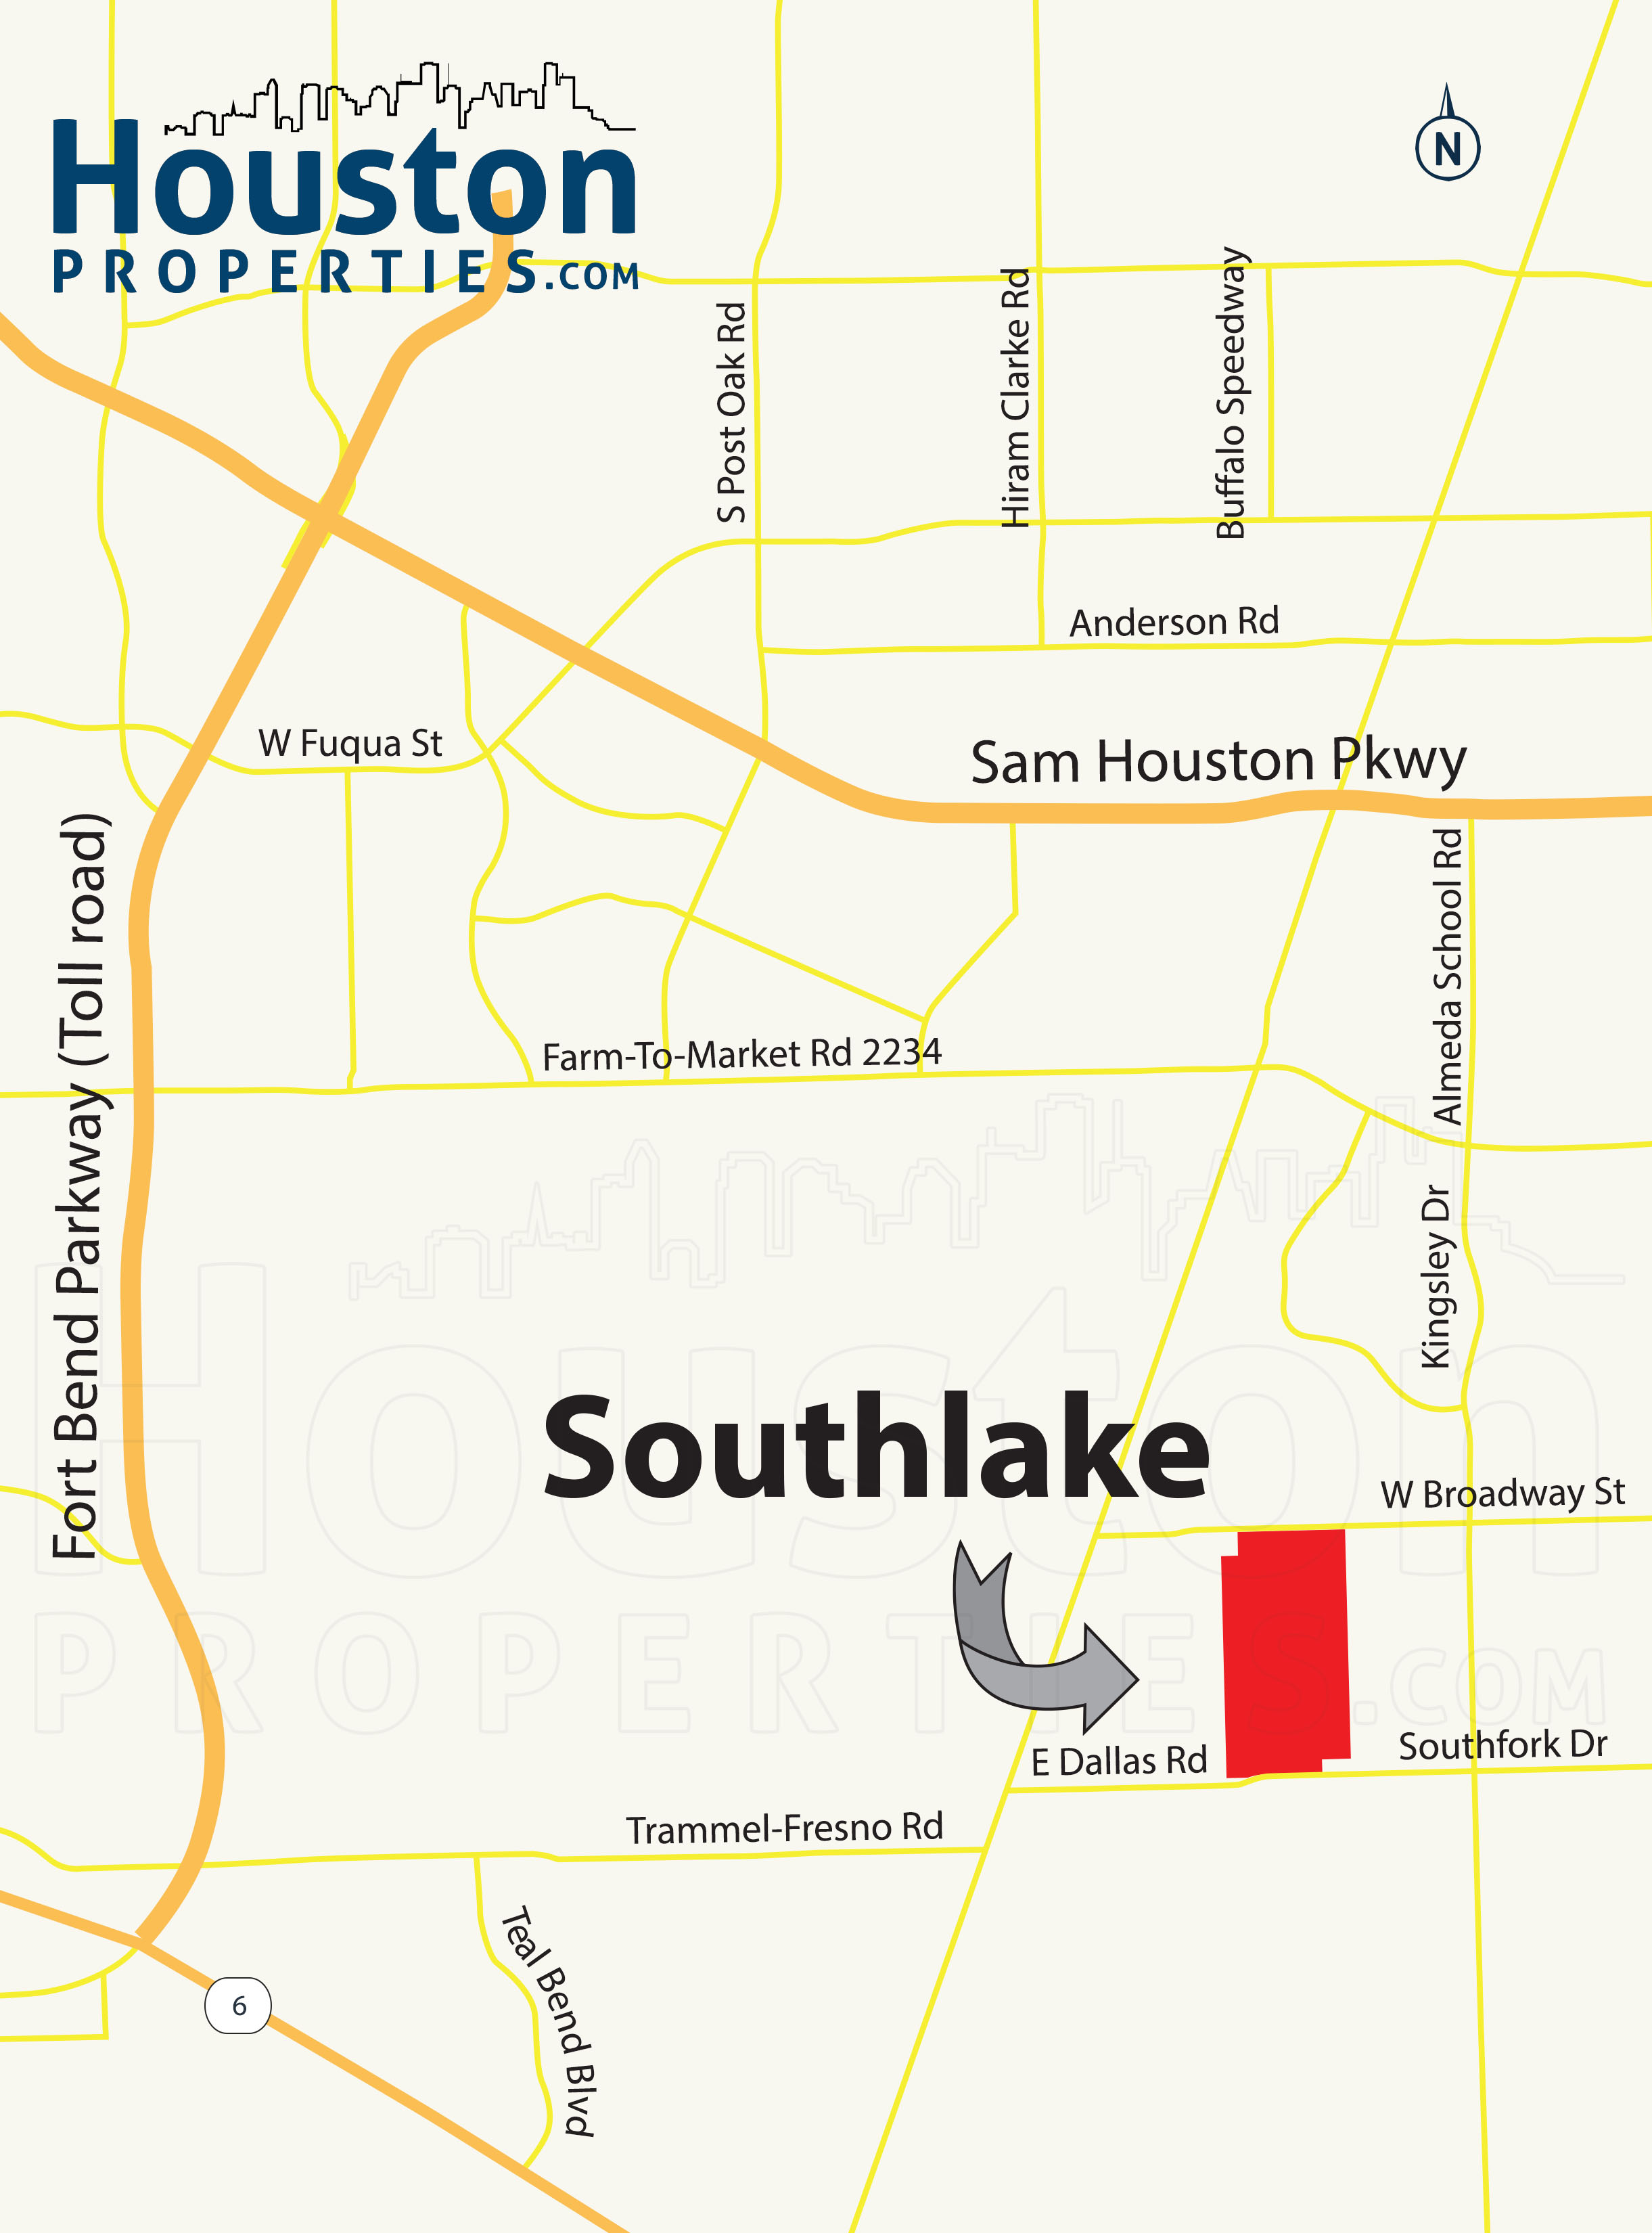 Southlake Pearland TX Guide | Southlake Homes For Sale